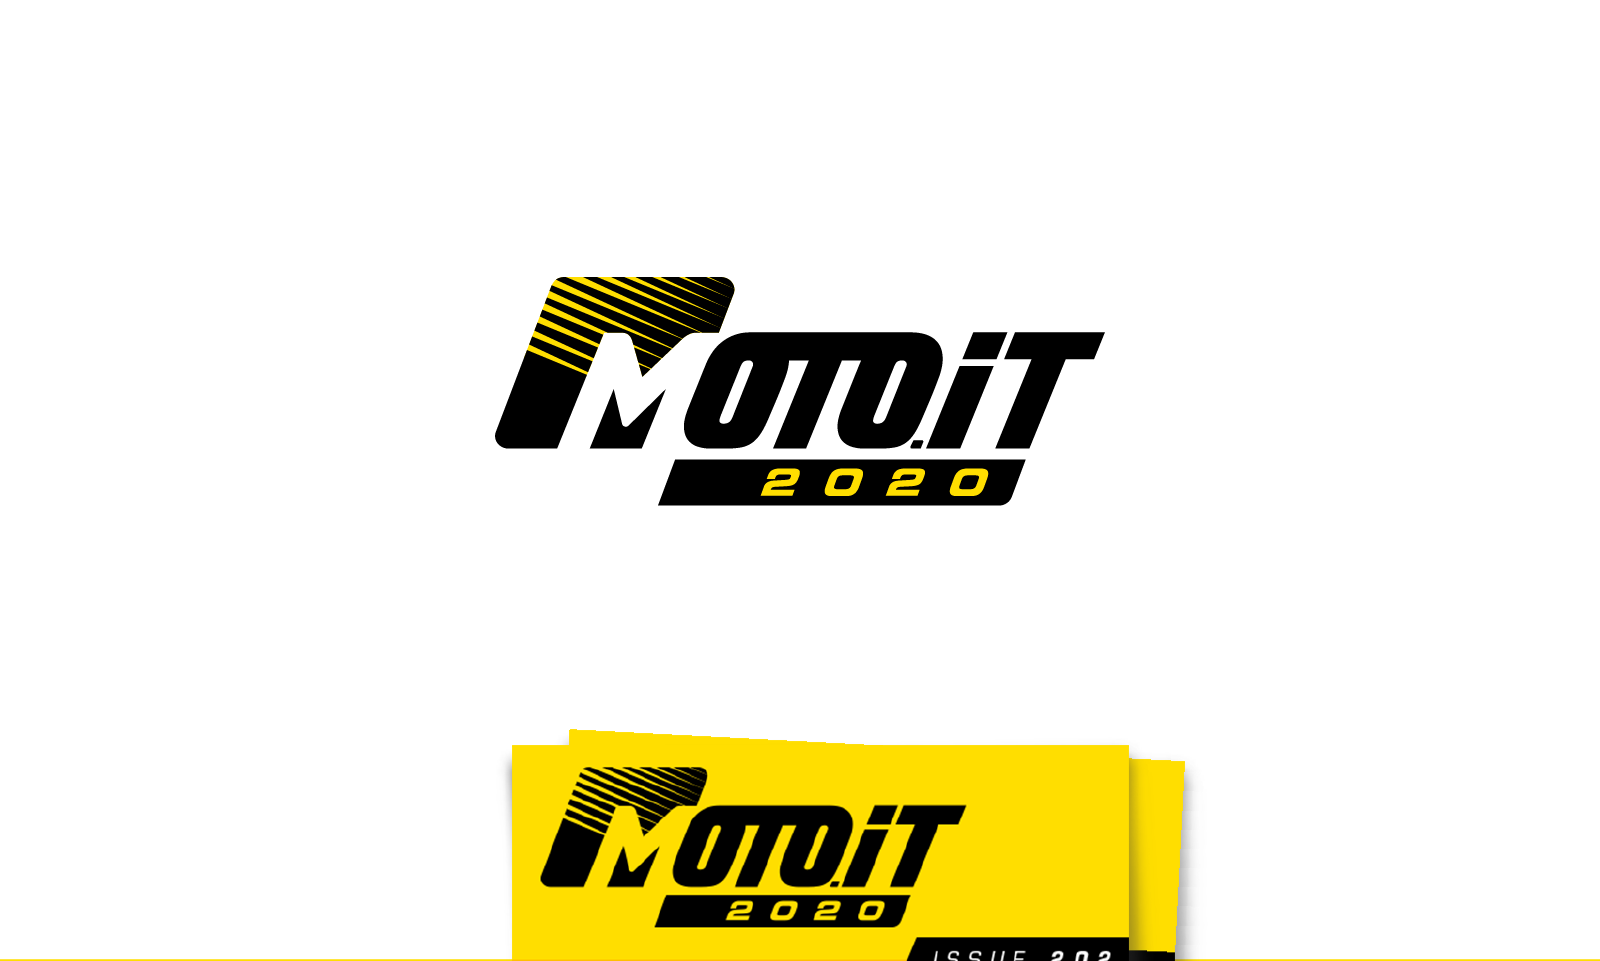 Moto.it logo design